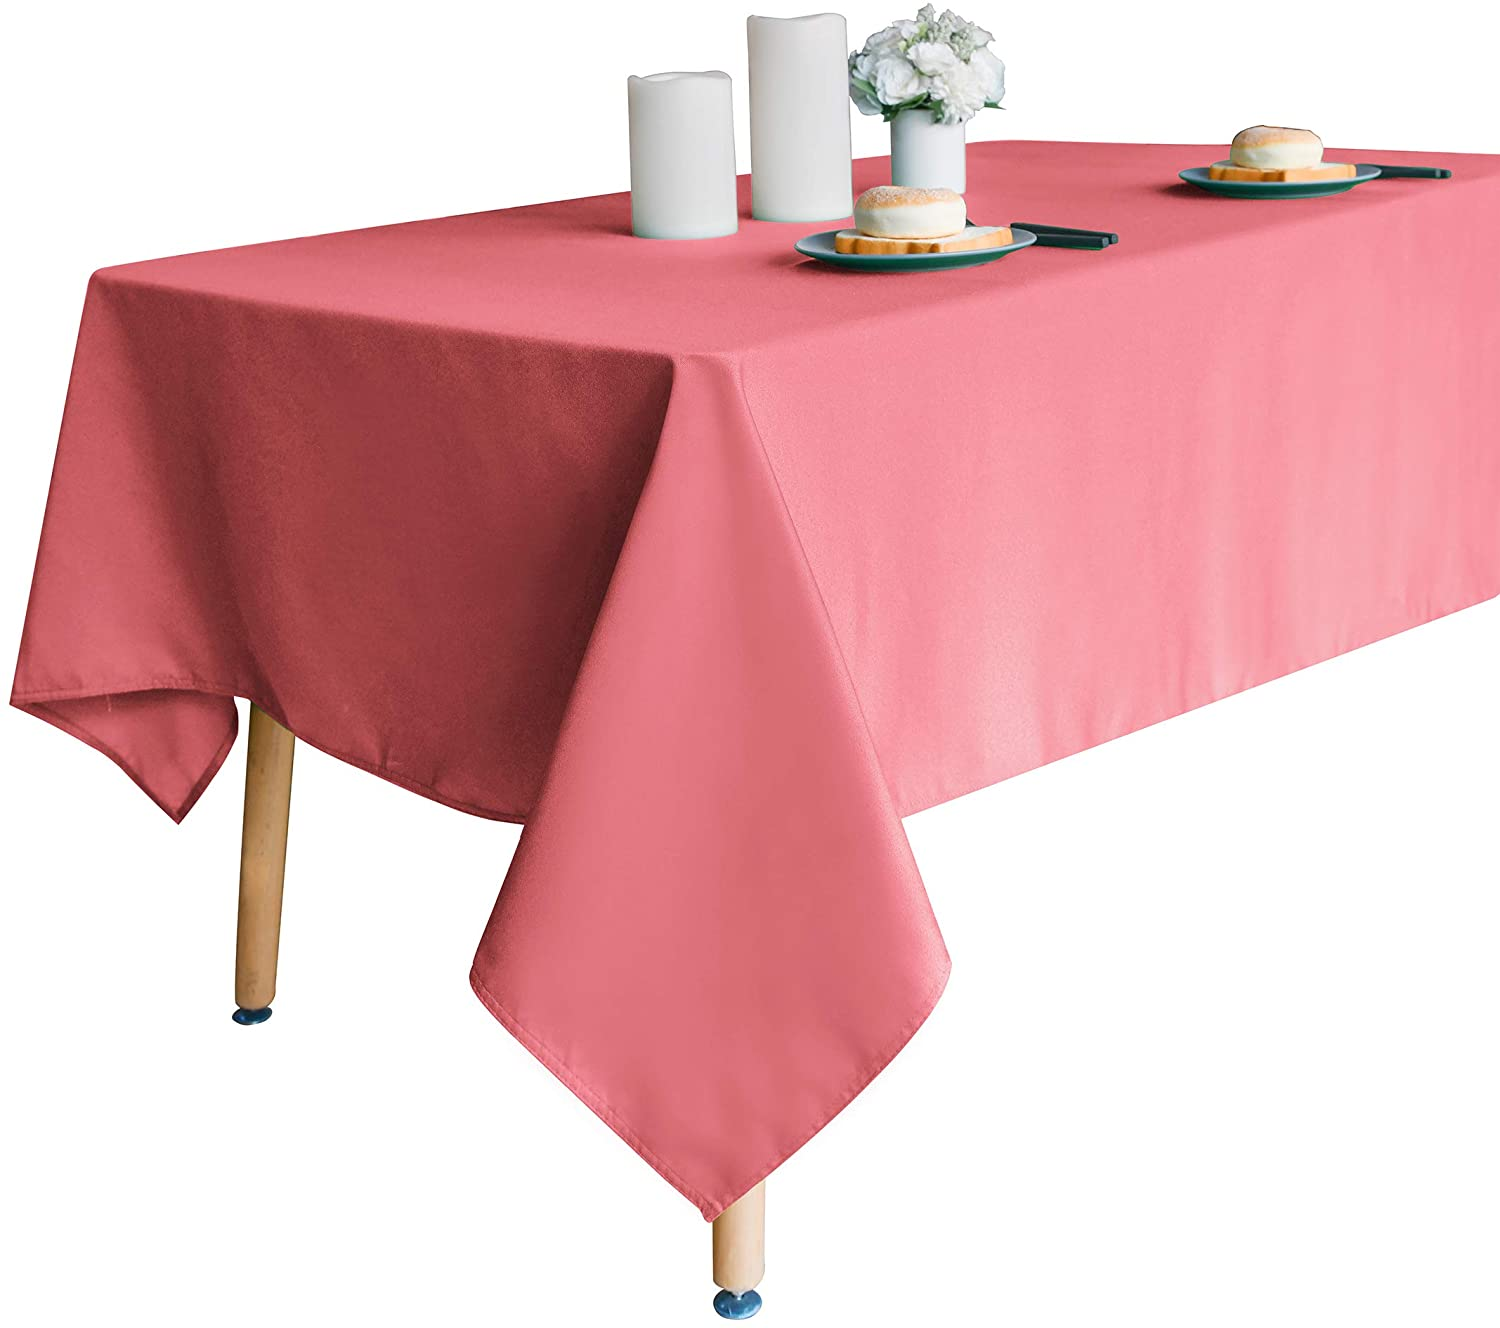 Obstal 210GSM Rectangle Table Cloth, Water Resistance Microfiber Tablecloth, Decorative Fabric Table Cover for Outdoor and Indoor Use (Coral Red, 60 x 120 Inch)